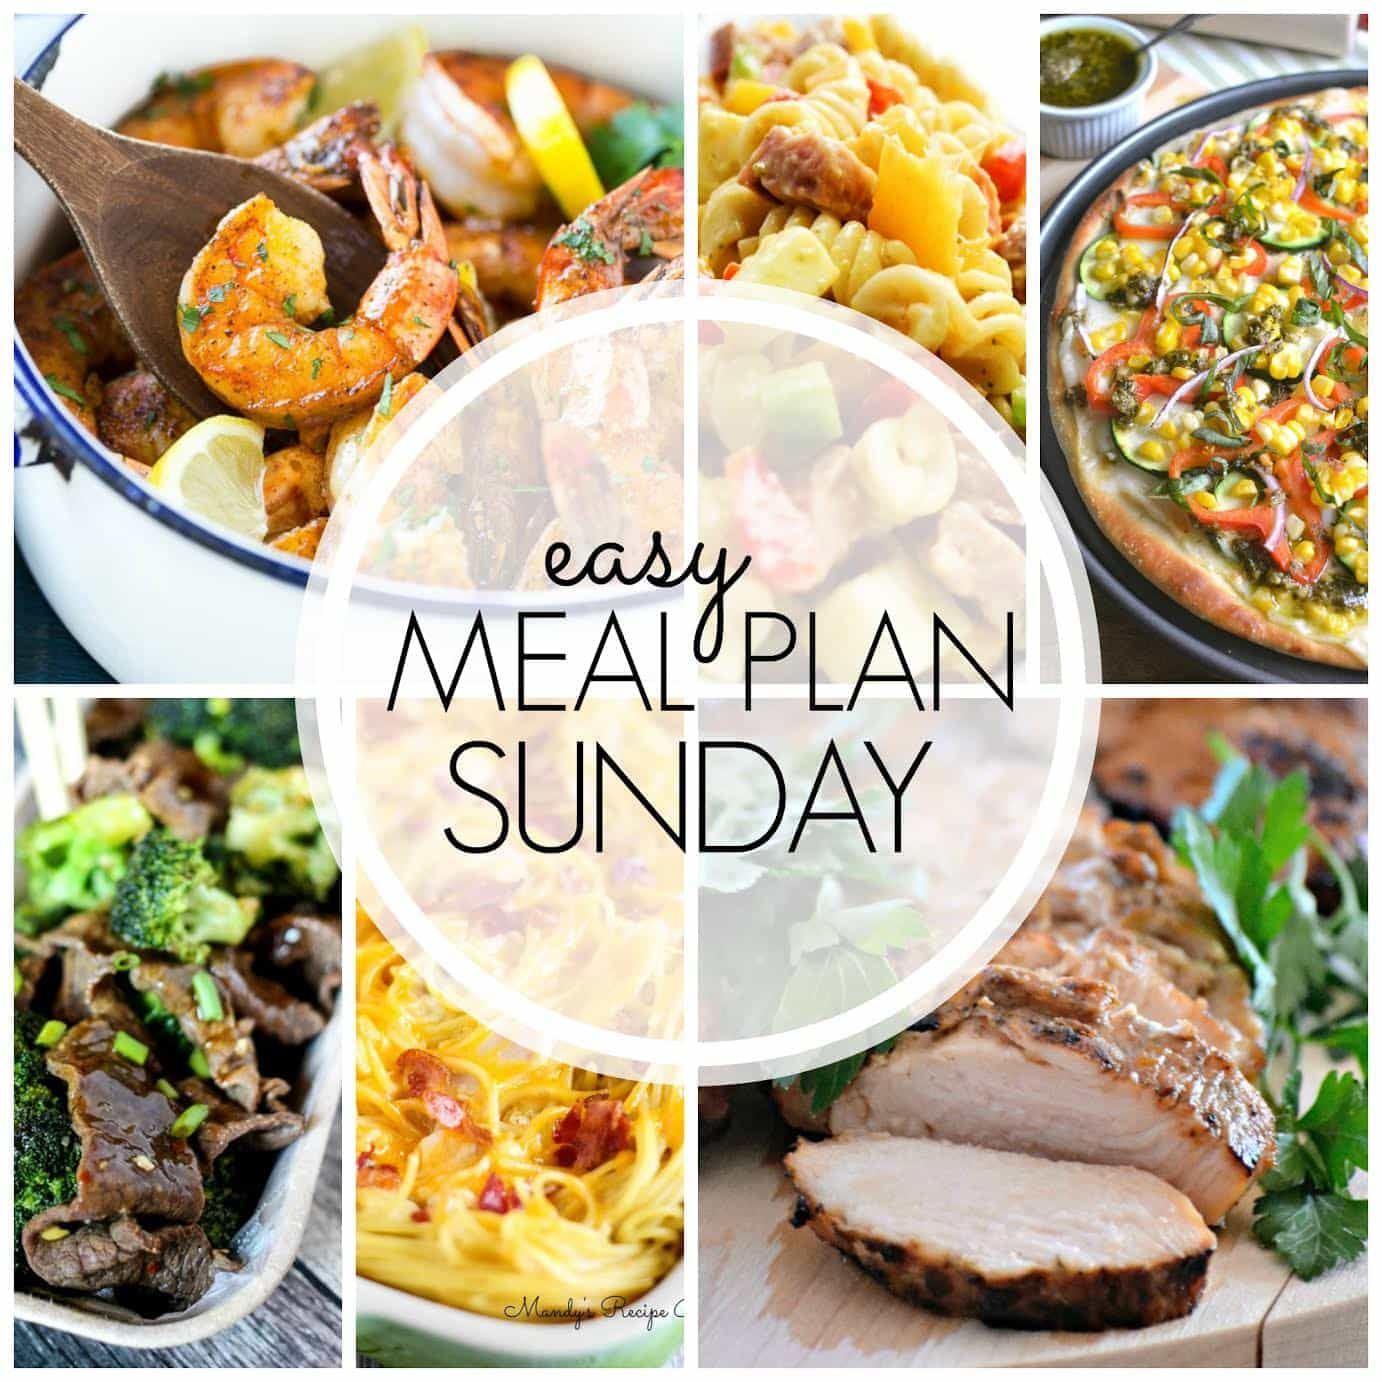 The BEST weekly meal plan, guaranteed to make your week feel easier and so much more delicious!